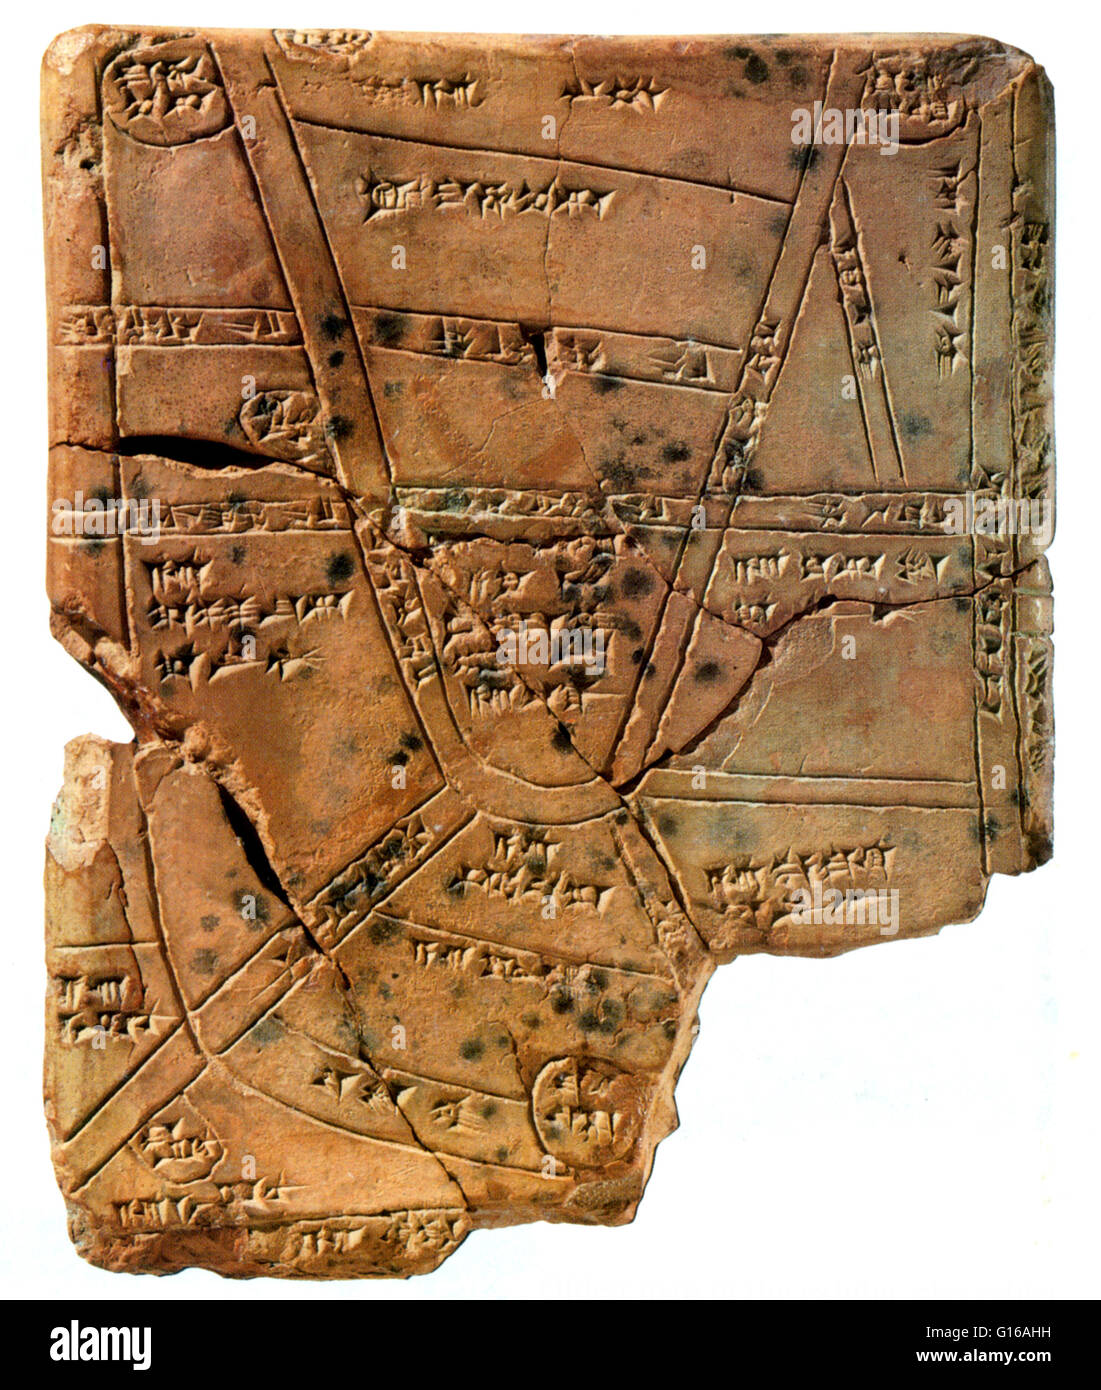 Clay cuneiform tablet, from 1500 BC, features the first known depiction of a map, showing fields belonging to royal - Stock Image